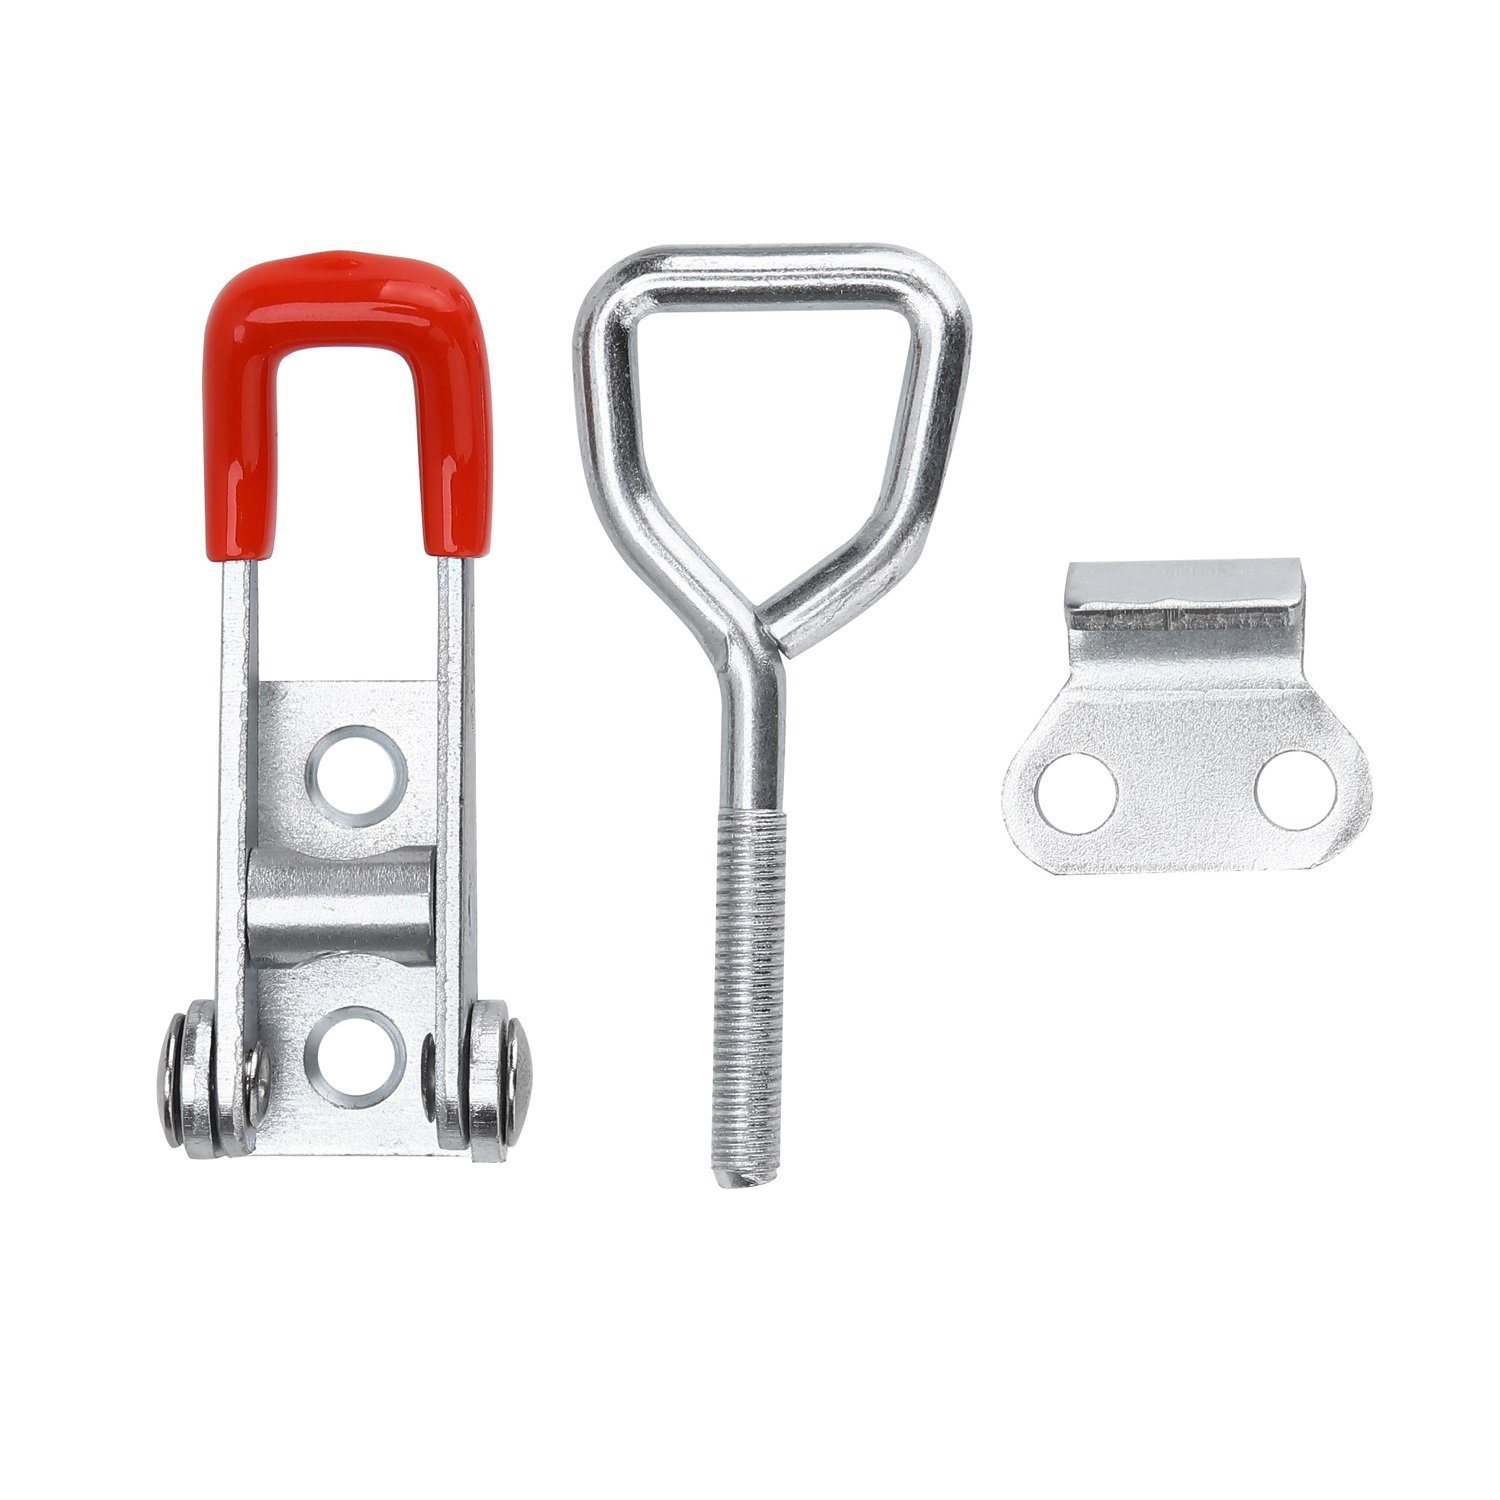 Heavy Duty Hand Tool Quick Release Metal Holding Capacity Door Latch Type 100Kg 220Lbs MINGZE 5pcs Toggle Clamp Latch 4001